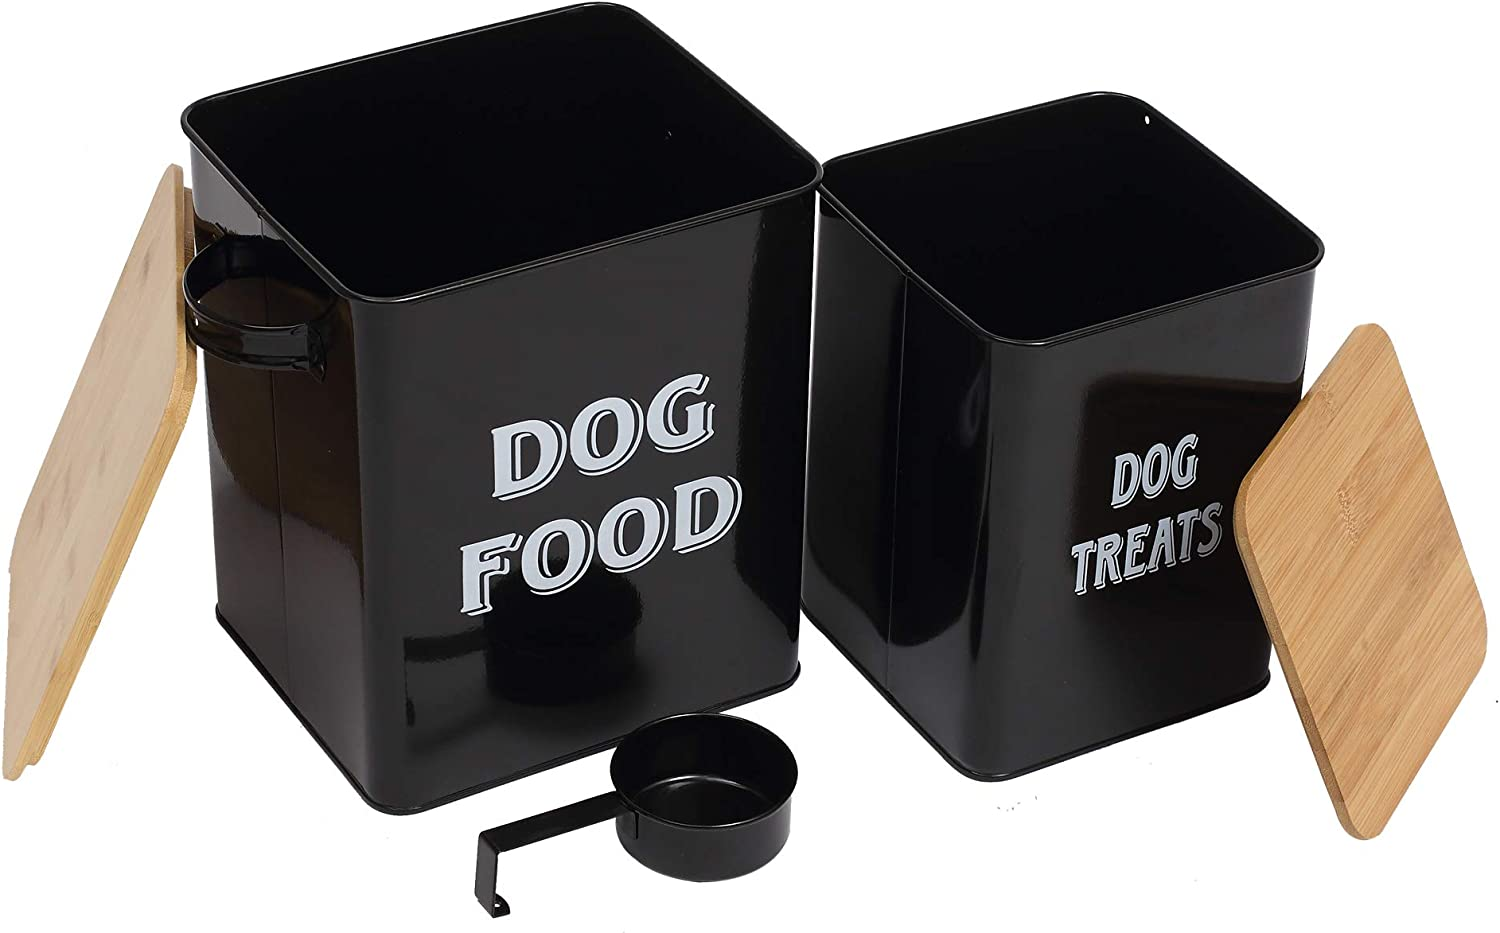 Pet Food and Treats Containers Set with Scoop for Cats or Dogs - Beige Powder-Coated Carbon Steel - Tight Fitting Wood Lids - Storage Canister Tins - Dog Food - Black